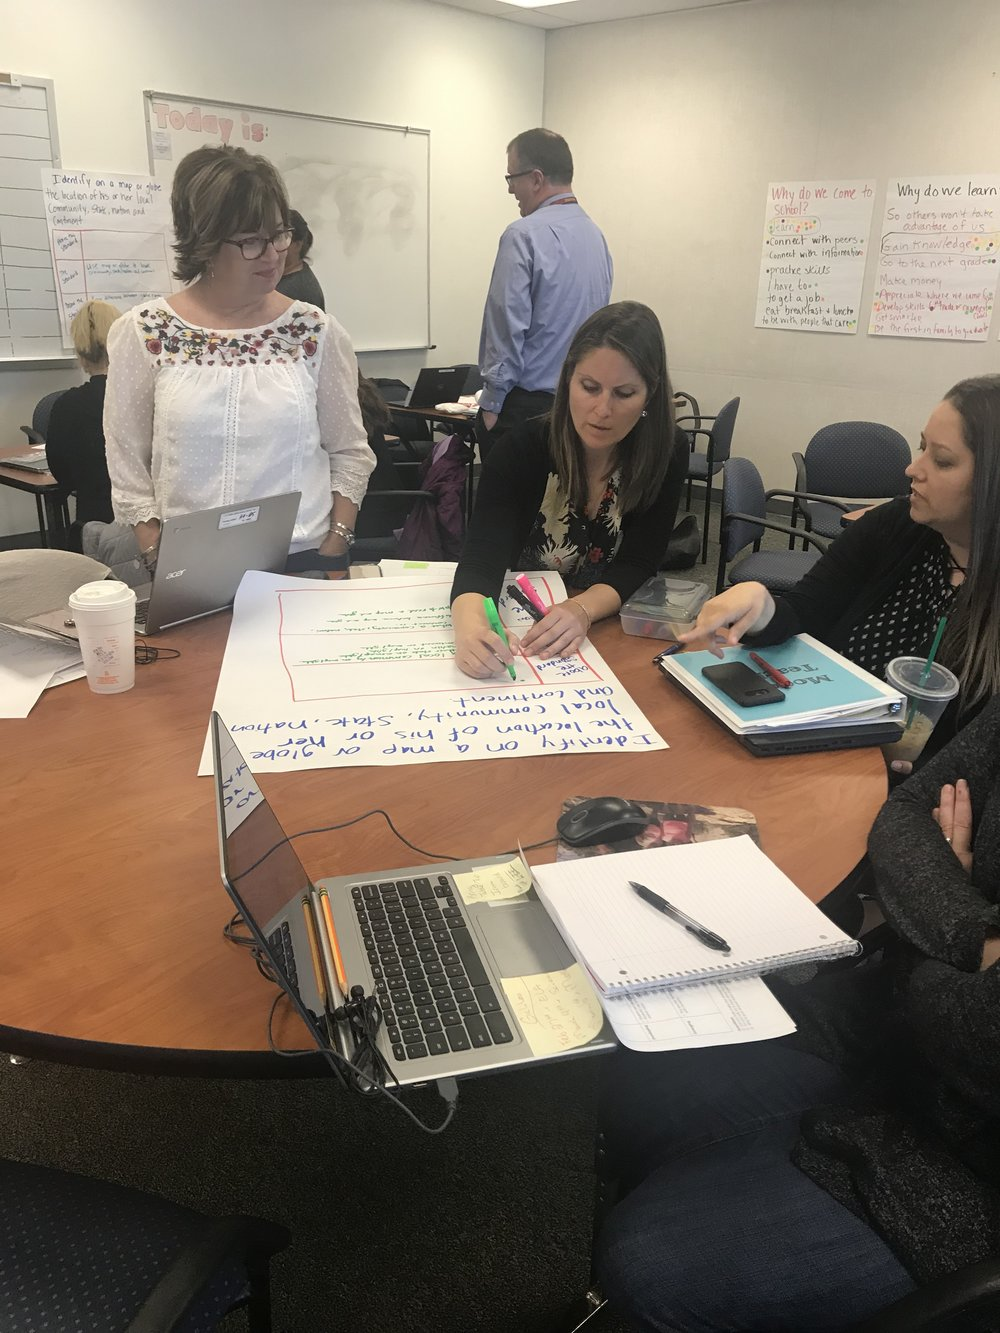 Principals, coaches, and teachers prepare to unpack standards with students